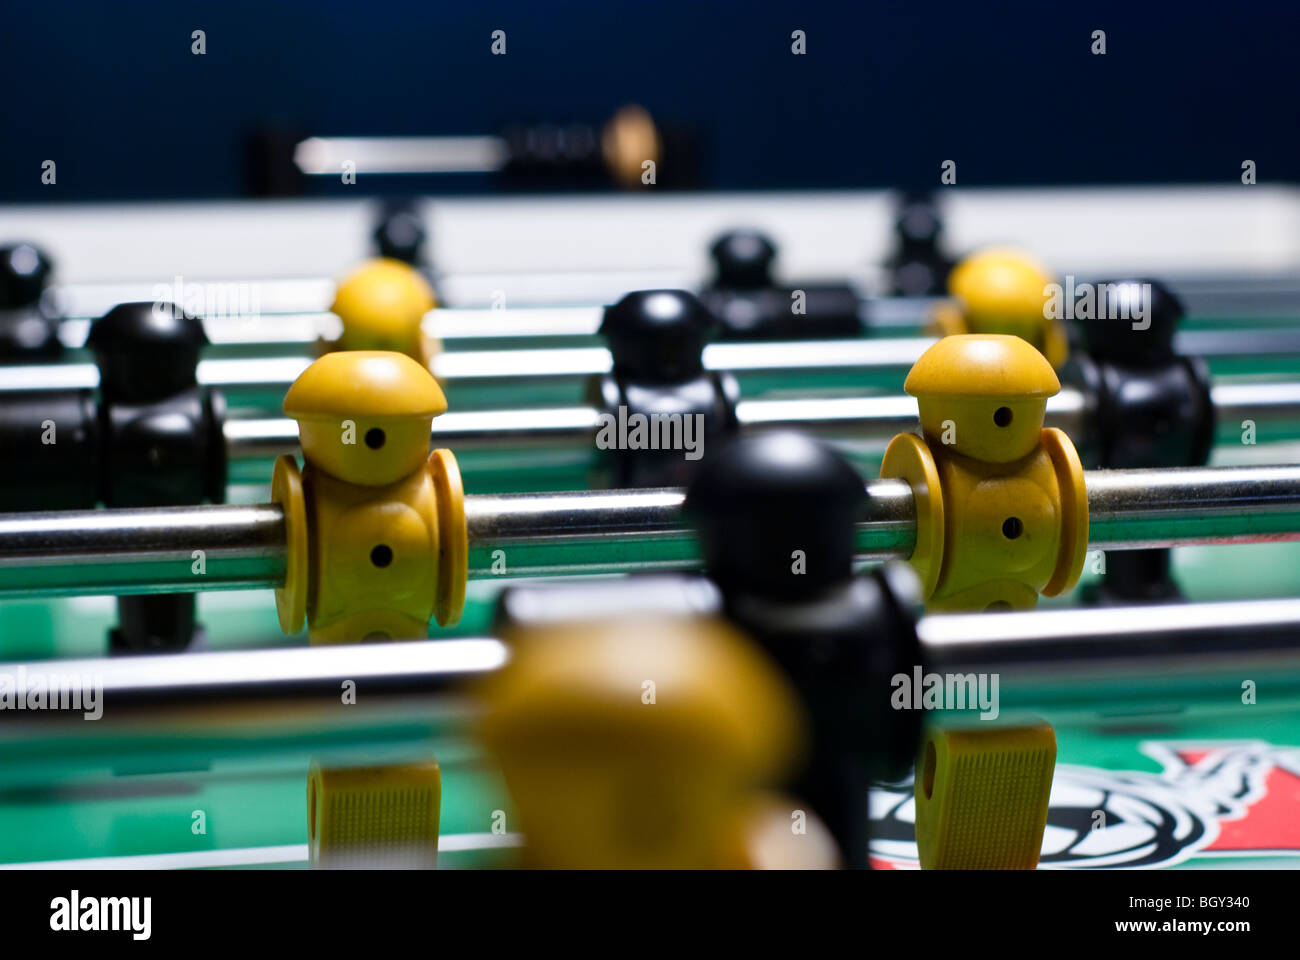 Soccer player on a soccer table, taken with shallow depth of field so only one row of yellow players is in focus - Stock Image